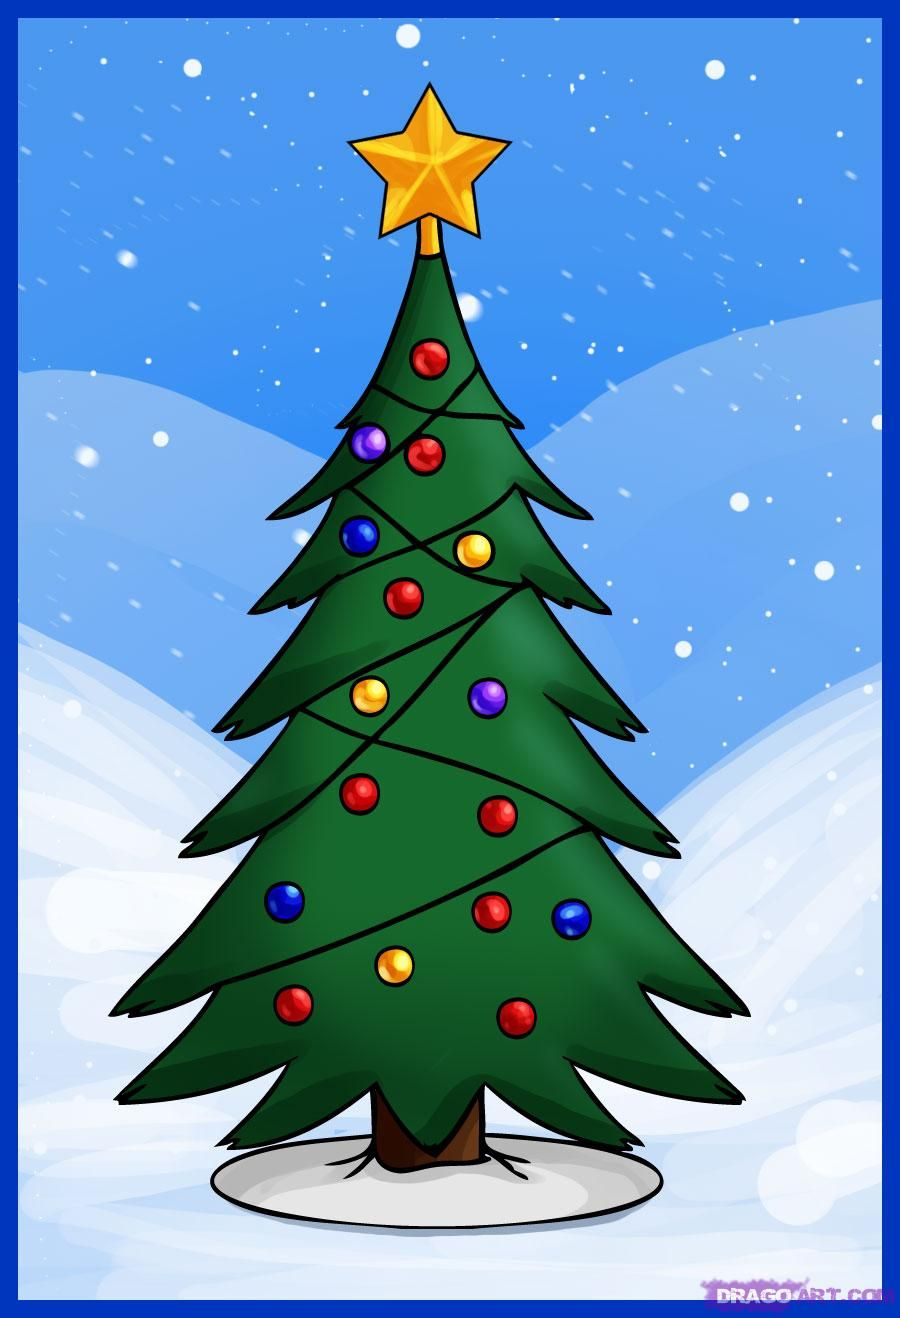 how to draw a christmas tree - A Christmas Tree